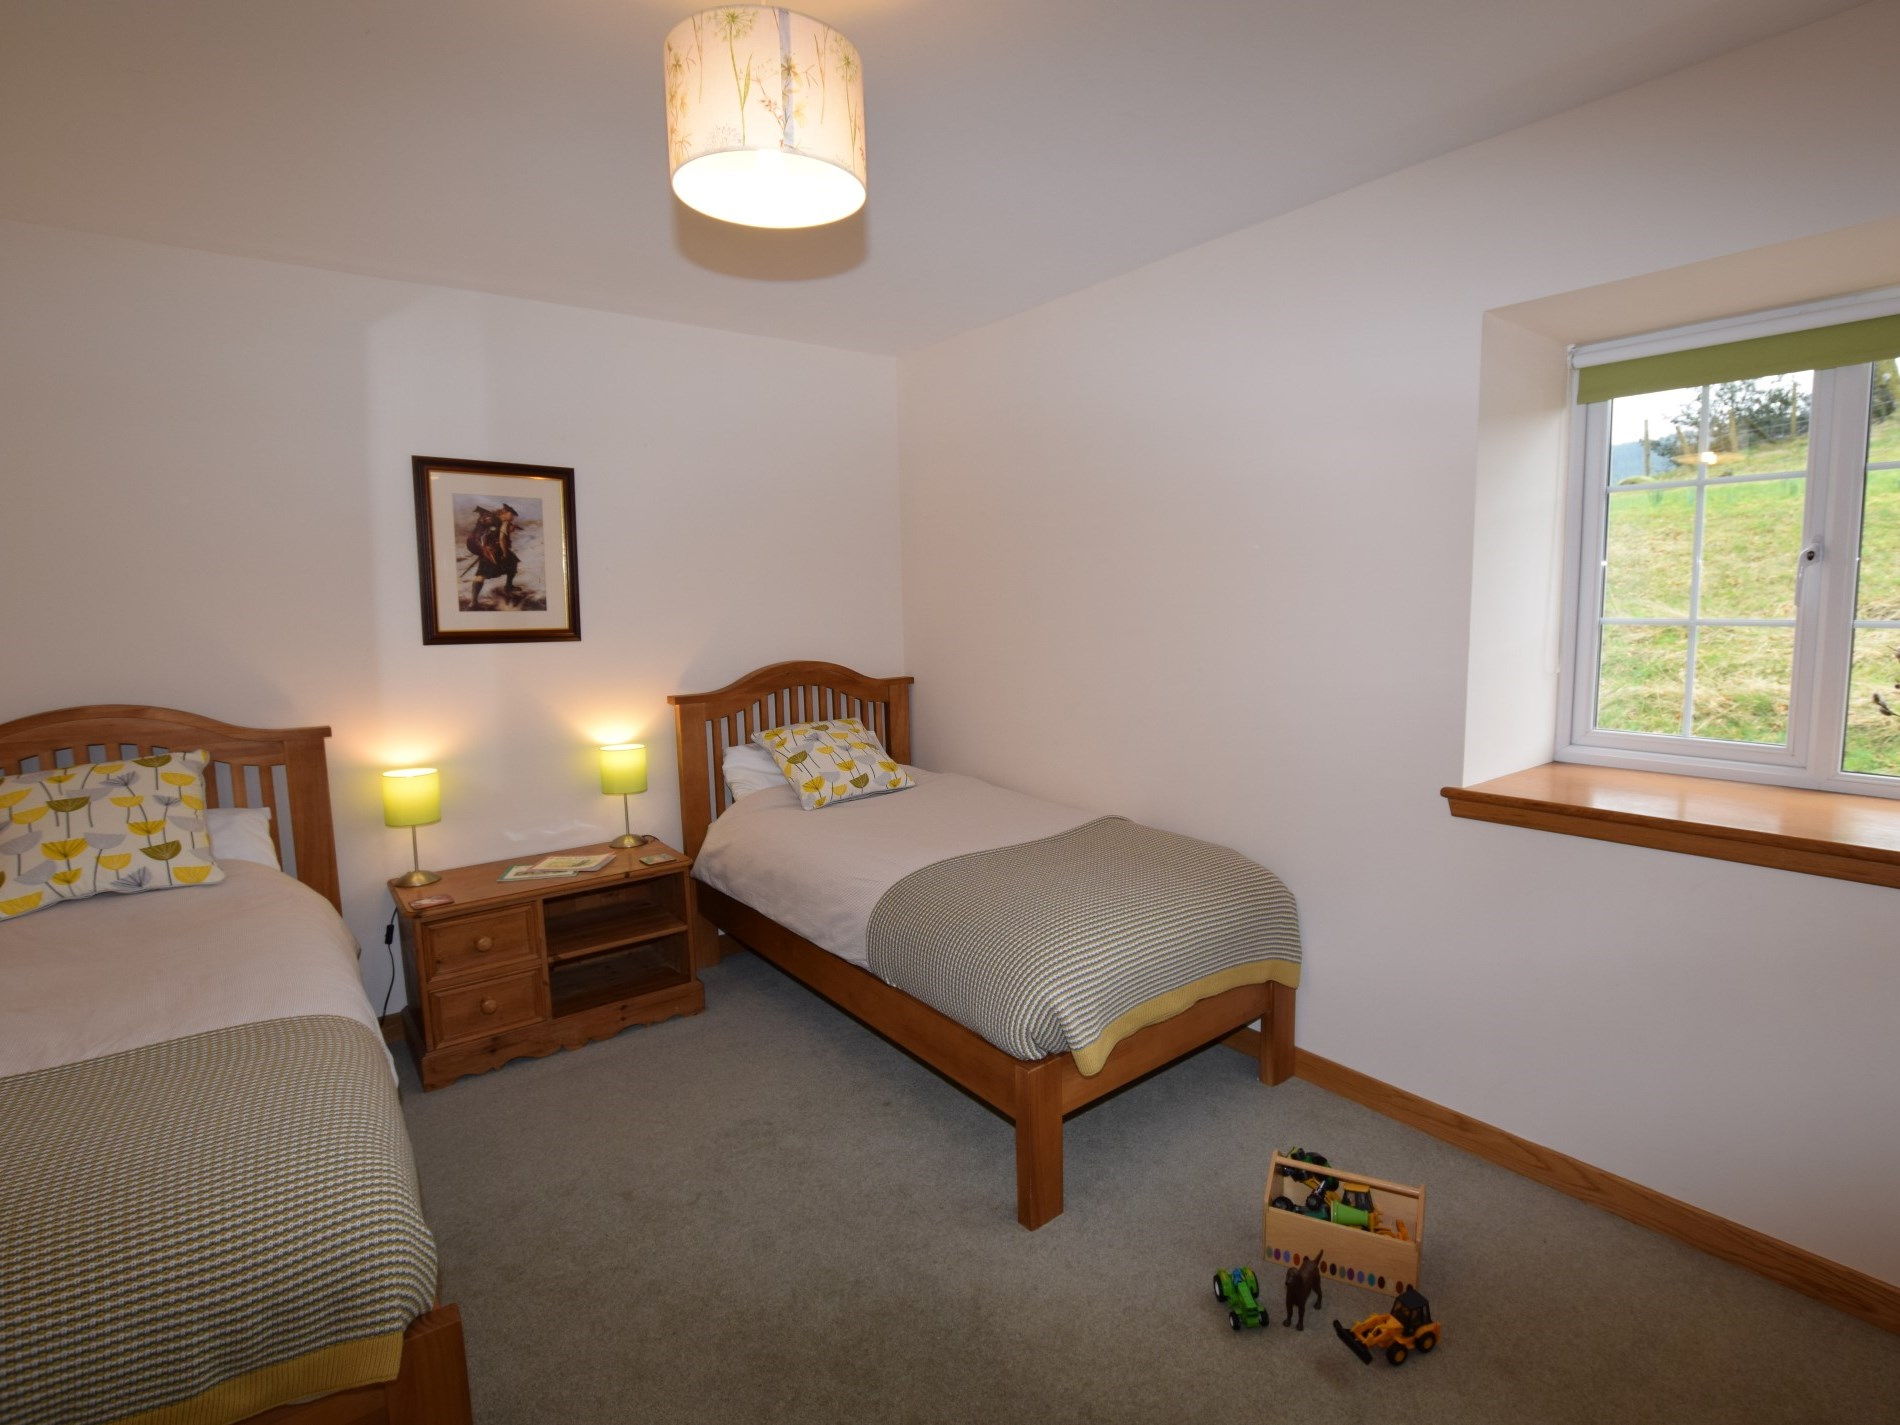 Twin bedroom with children's toys